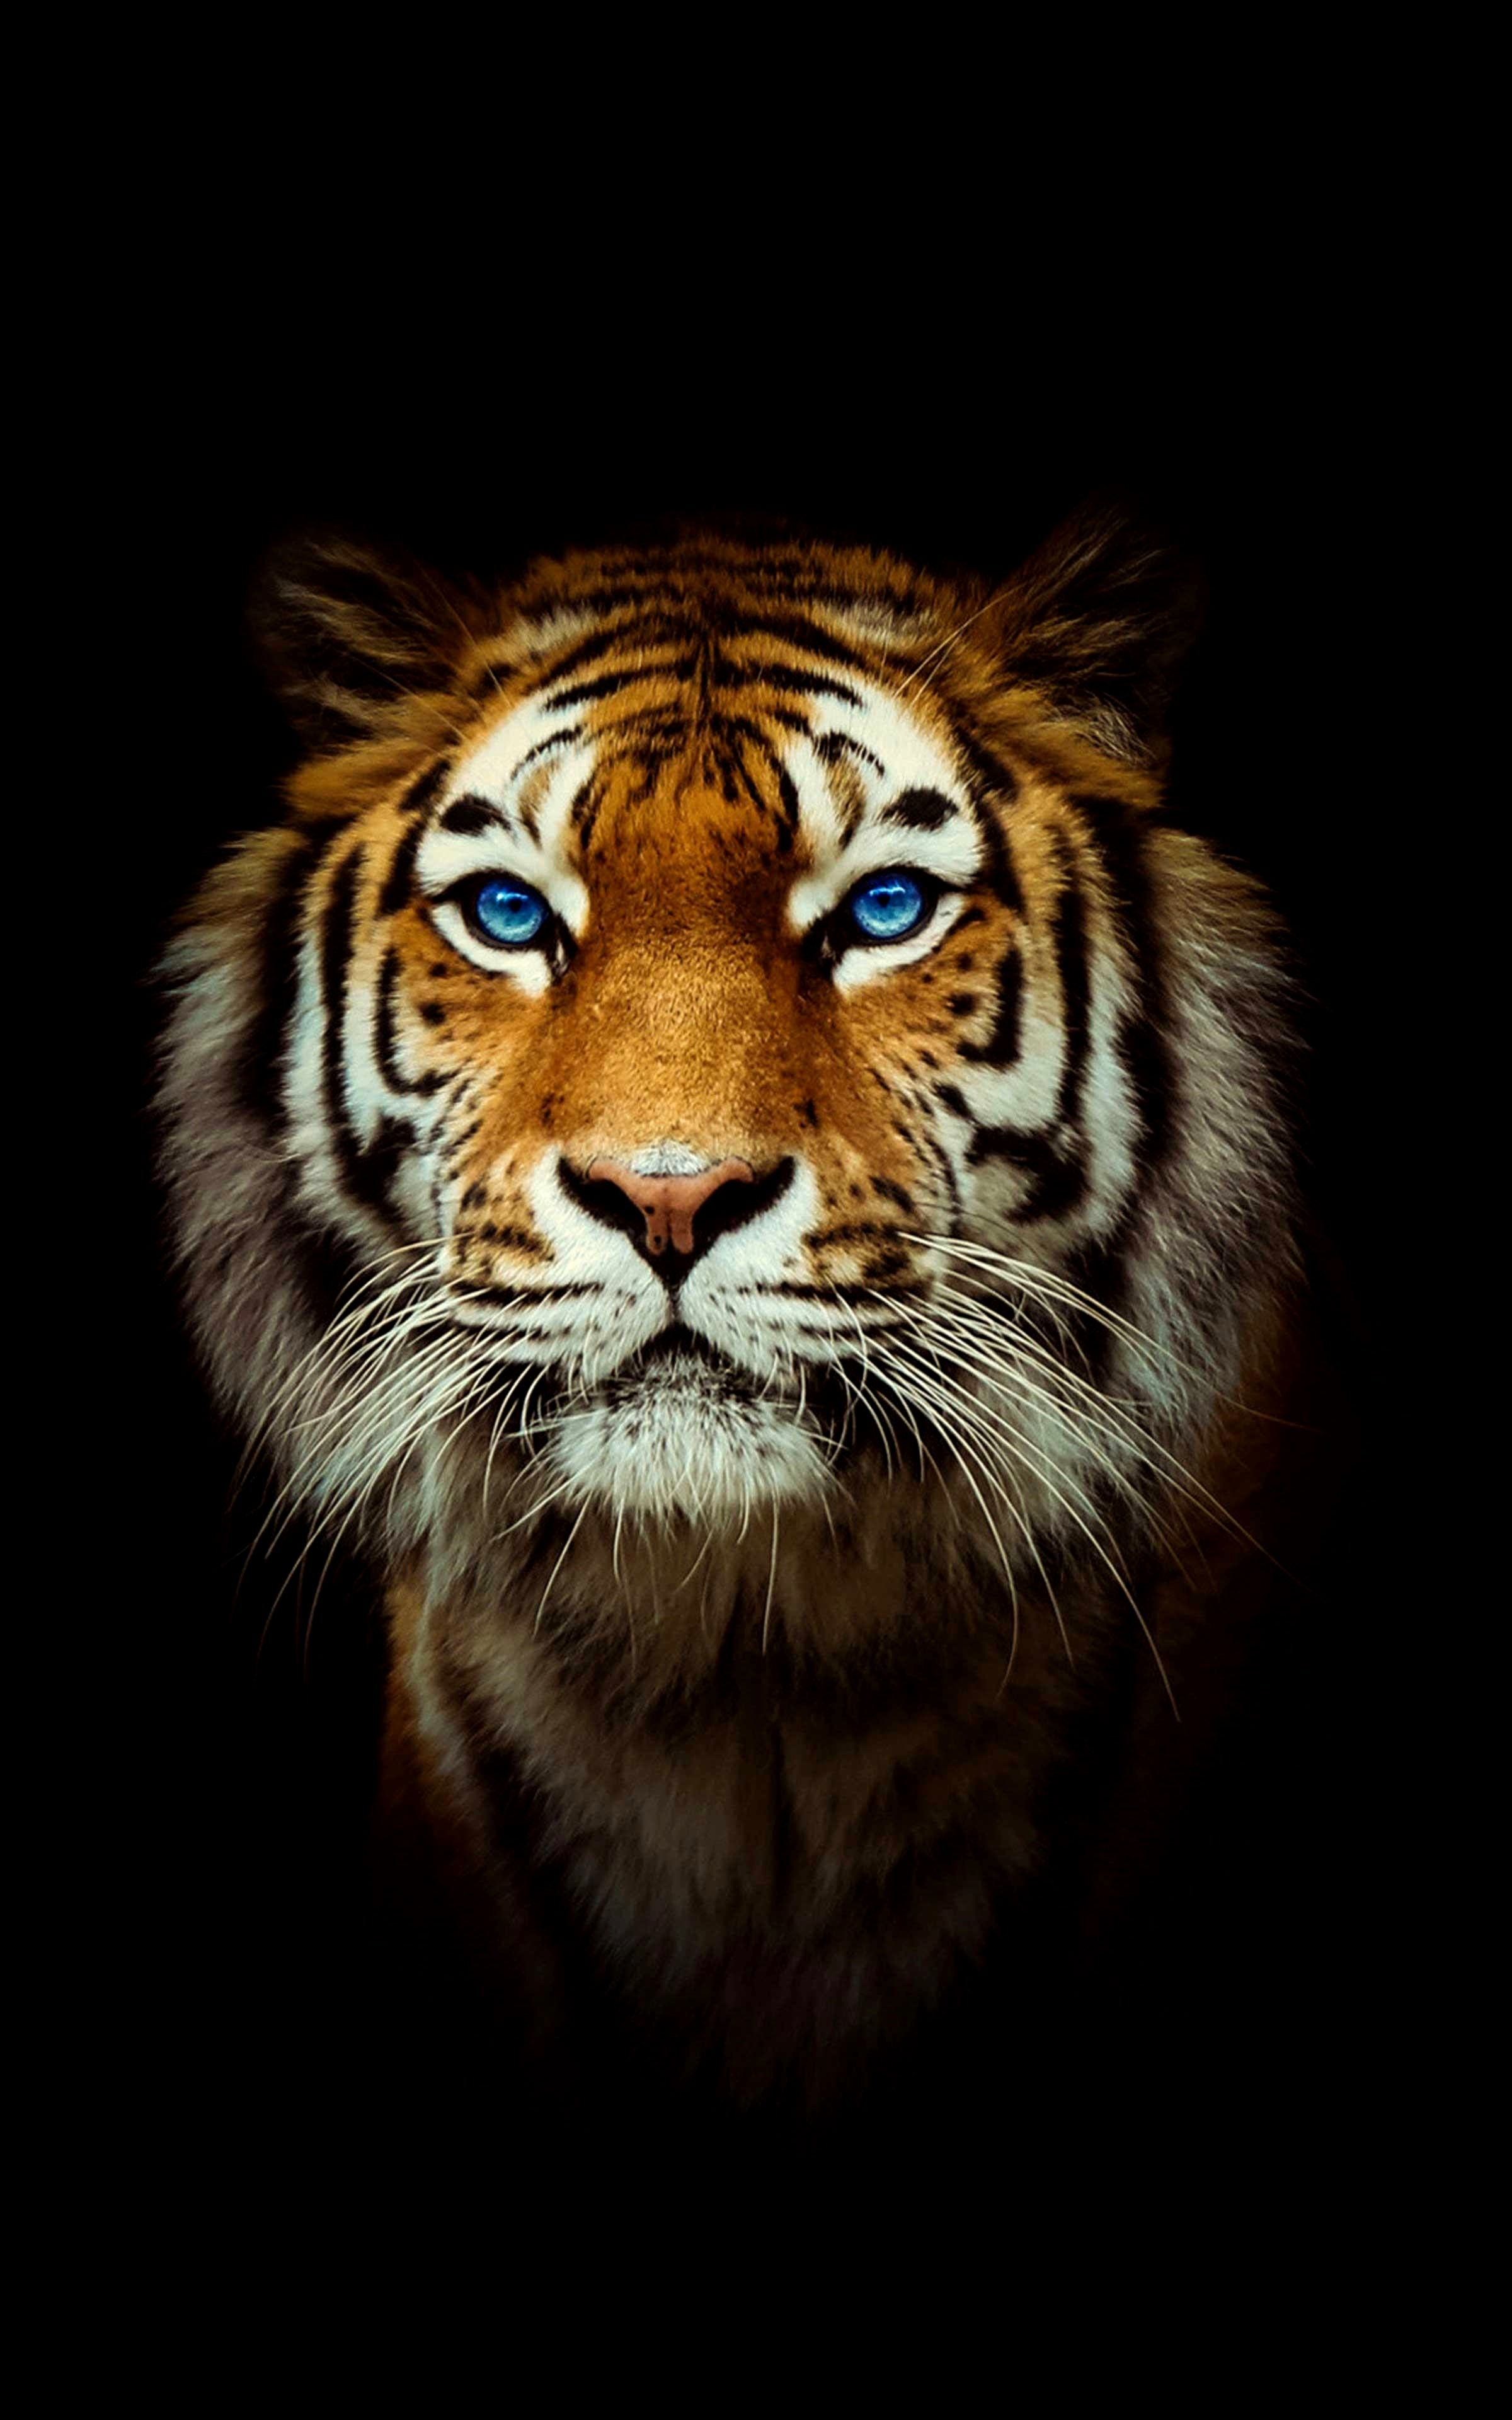 Wallpaper 4k Tiger Gallery Tiger Wallpaper Tiger Wallpaper Iphone Tiger Pictures